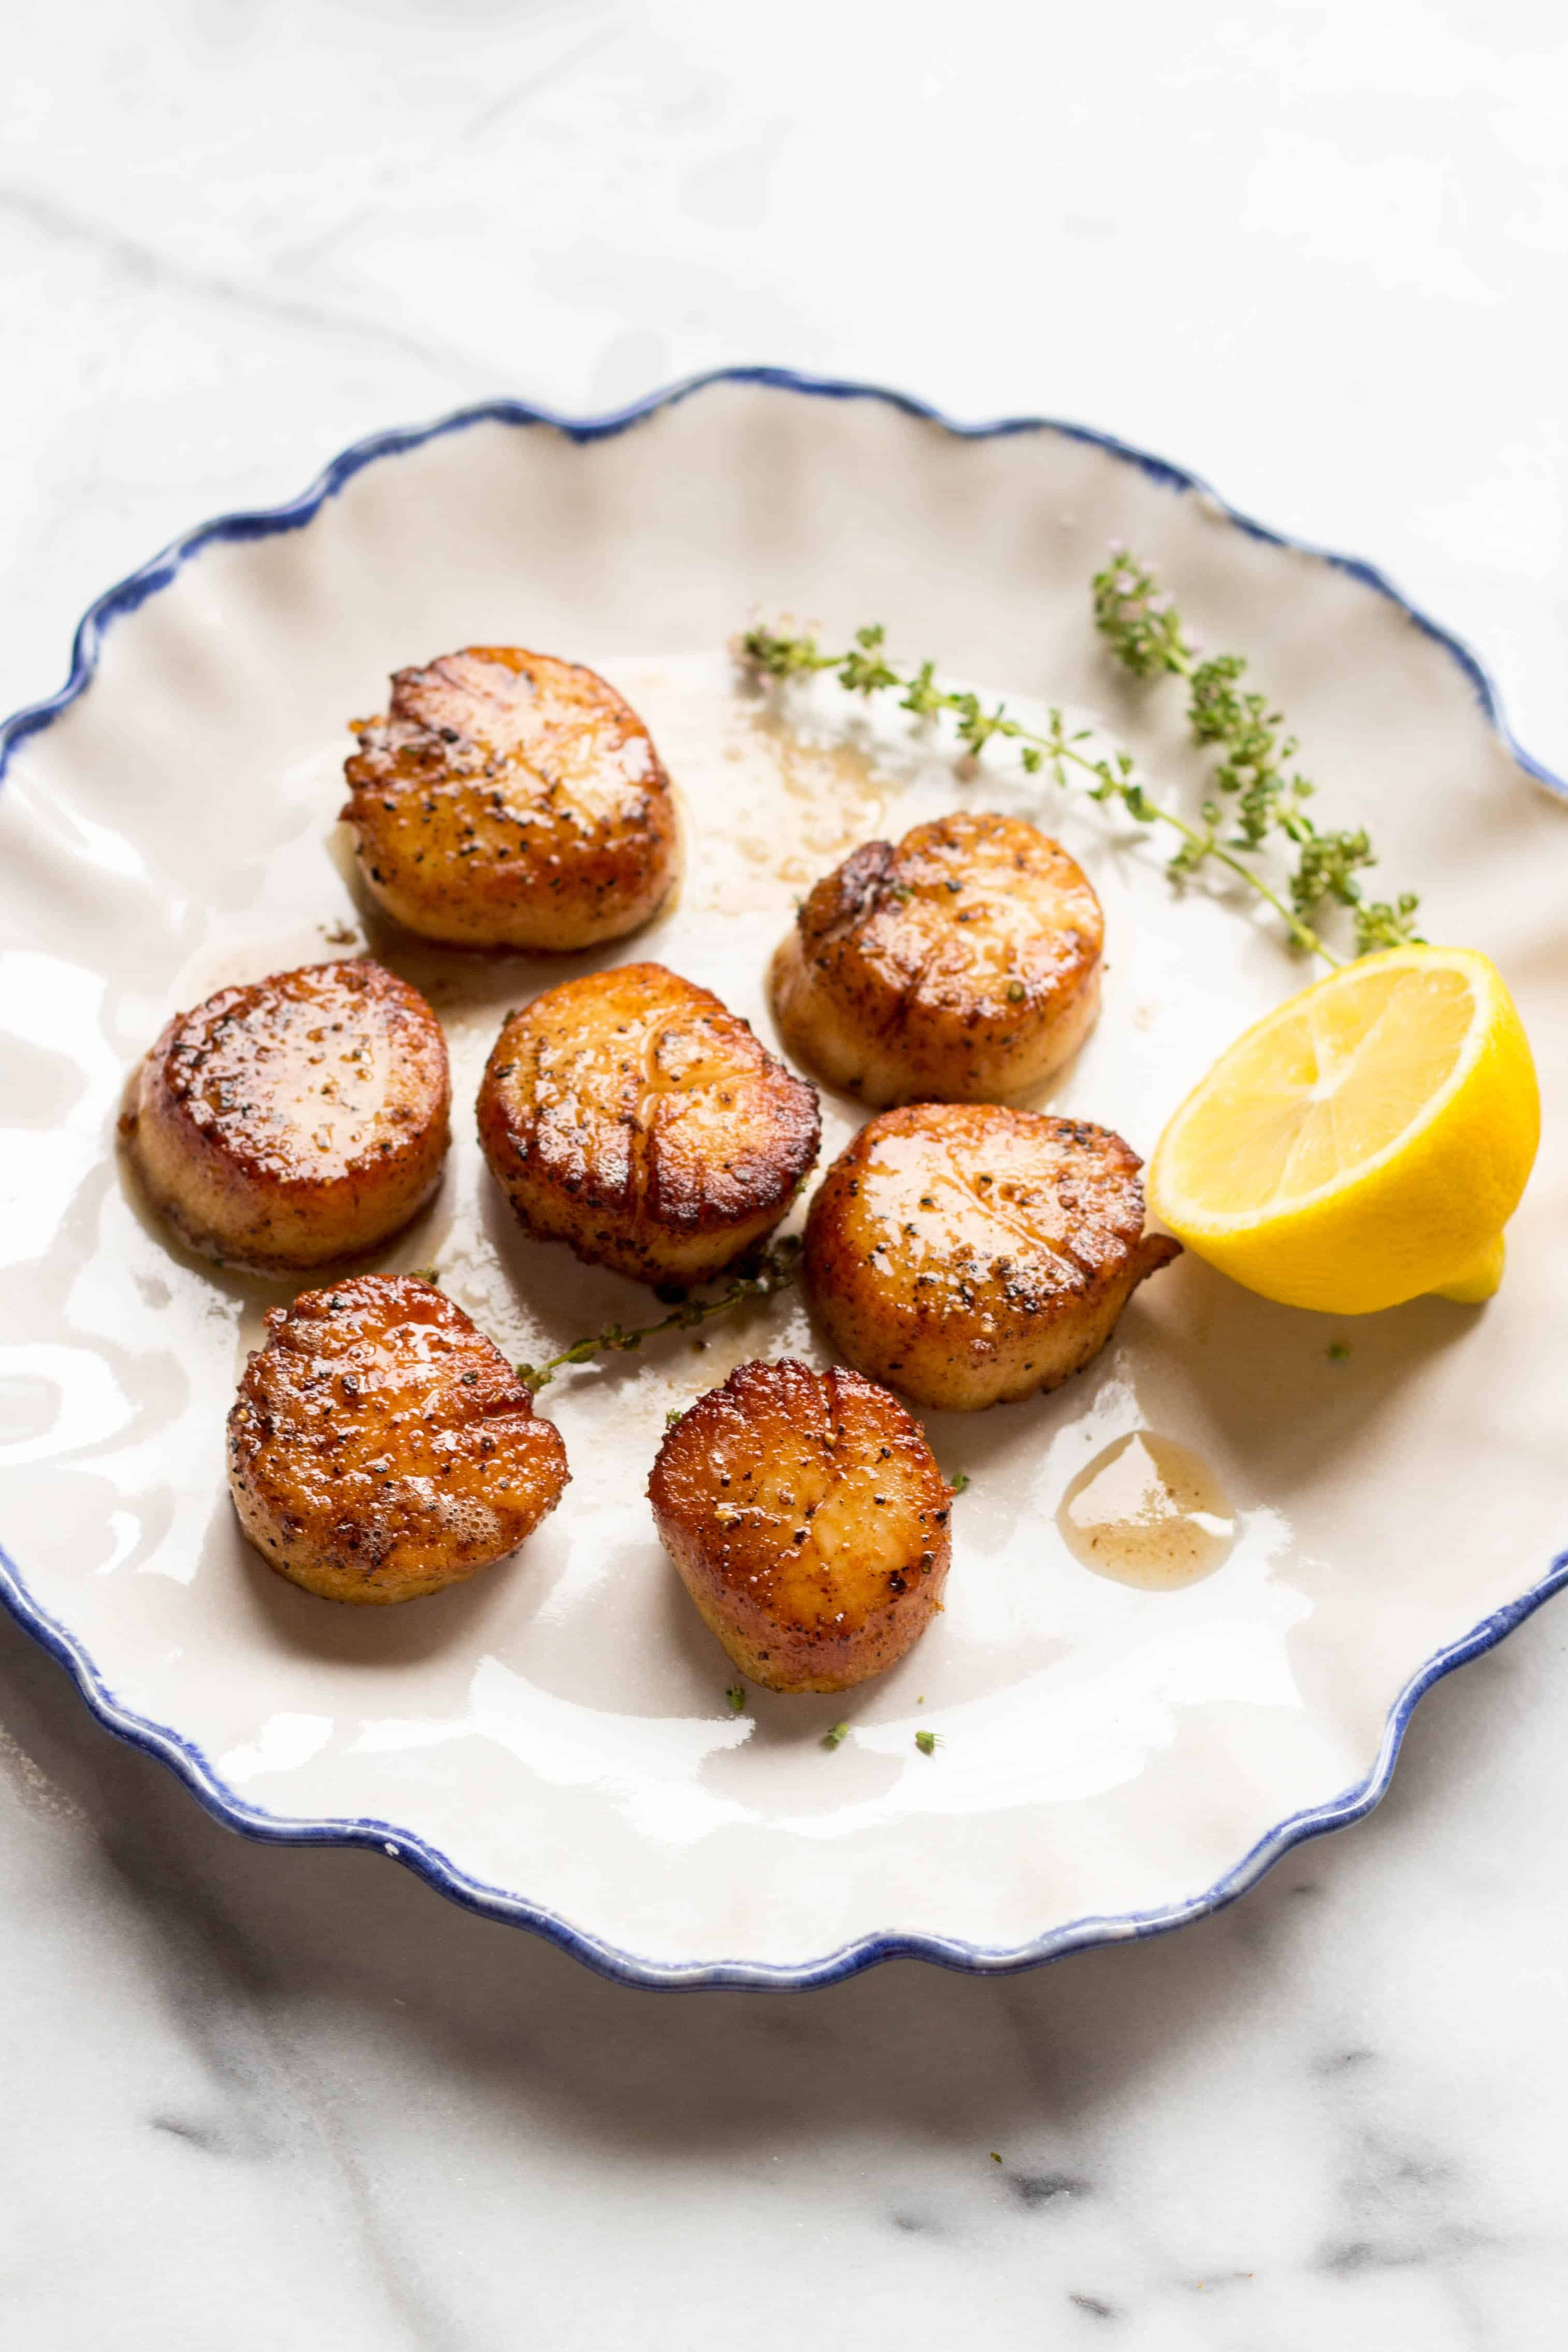 Blue edged white dinner plate with pan seared scallops and a lemon half.